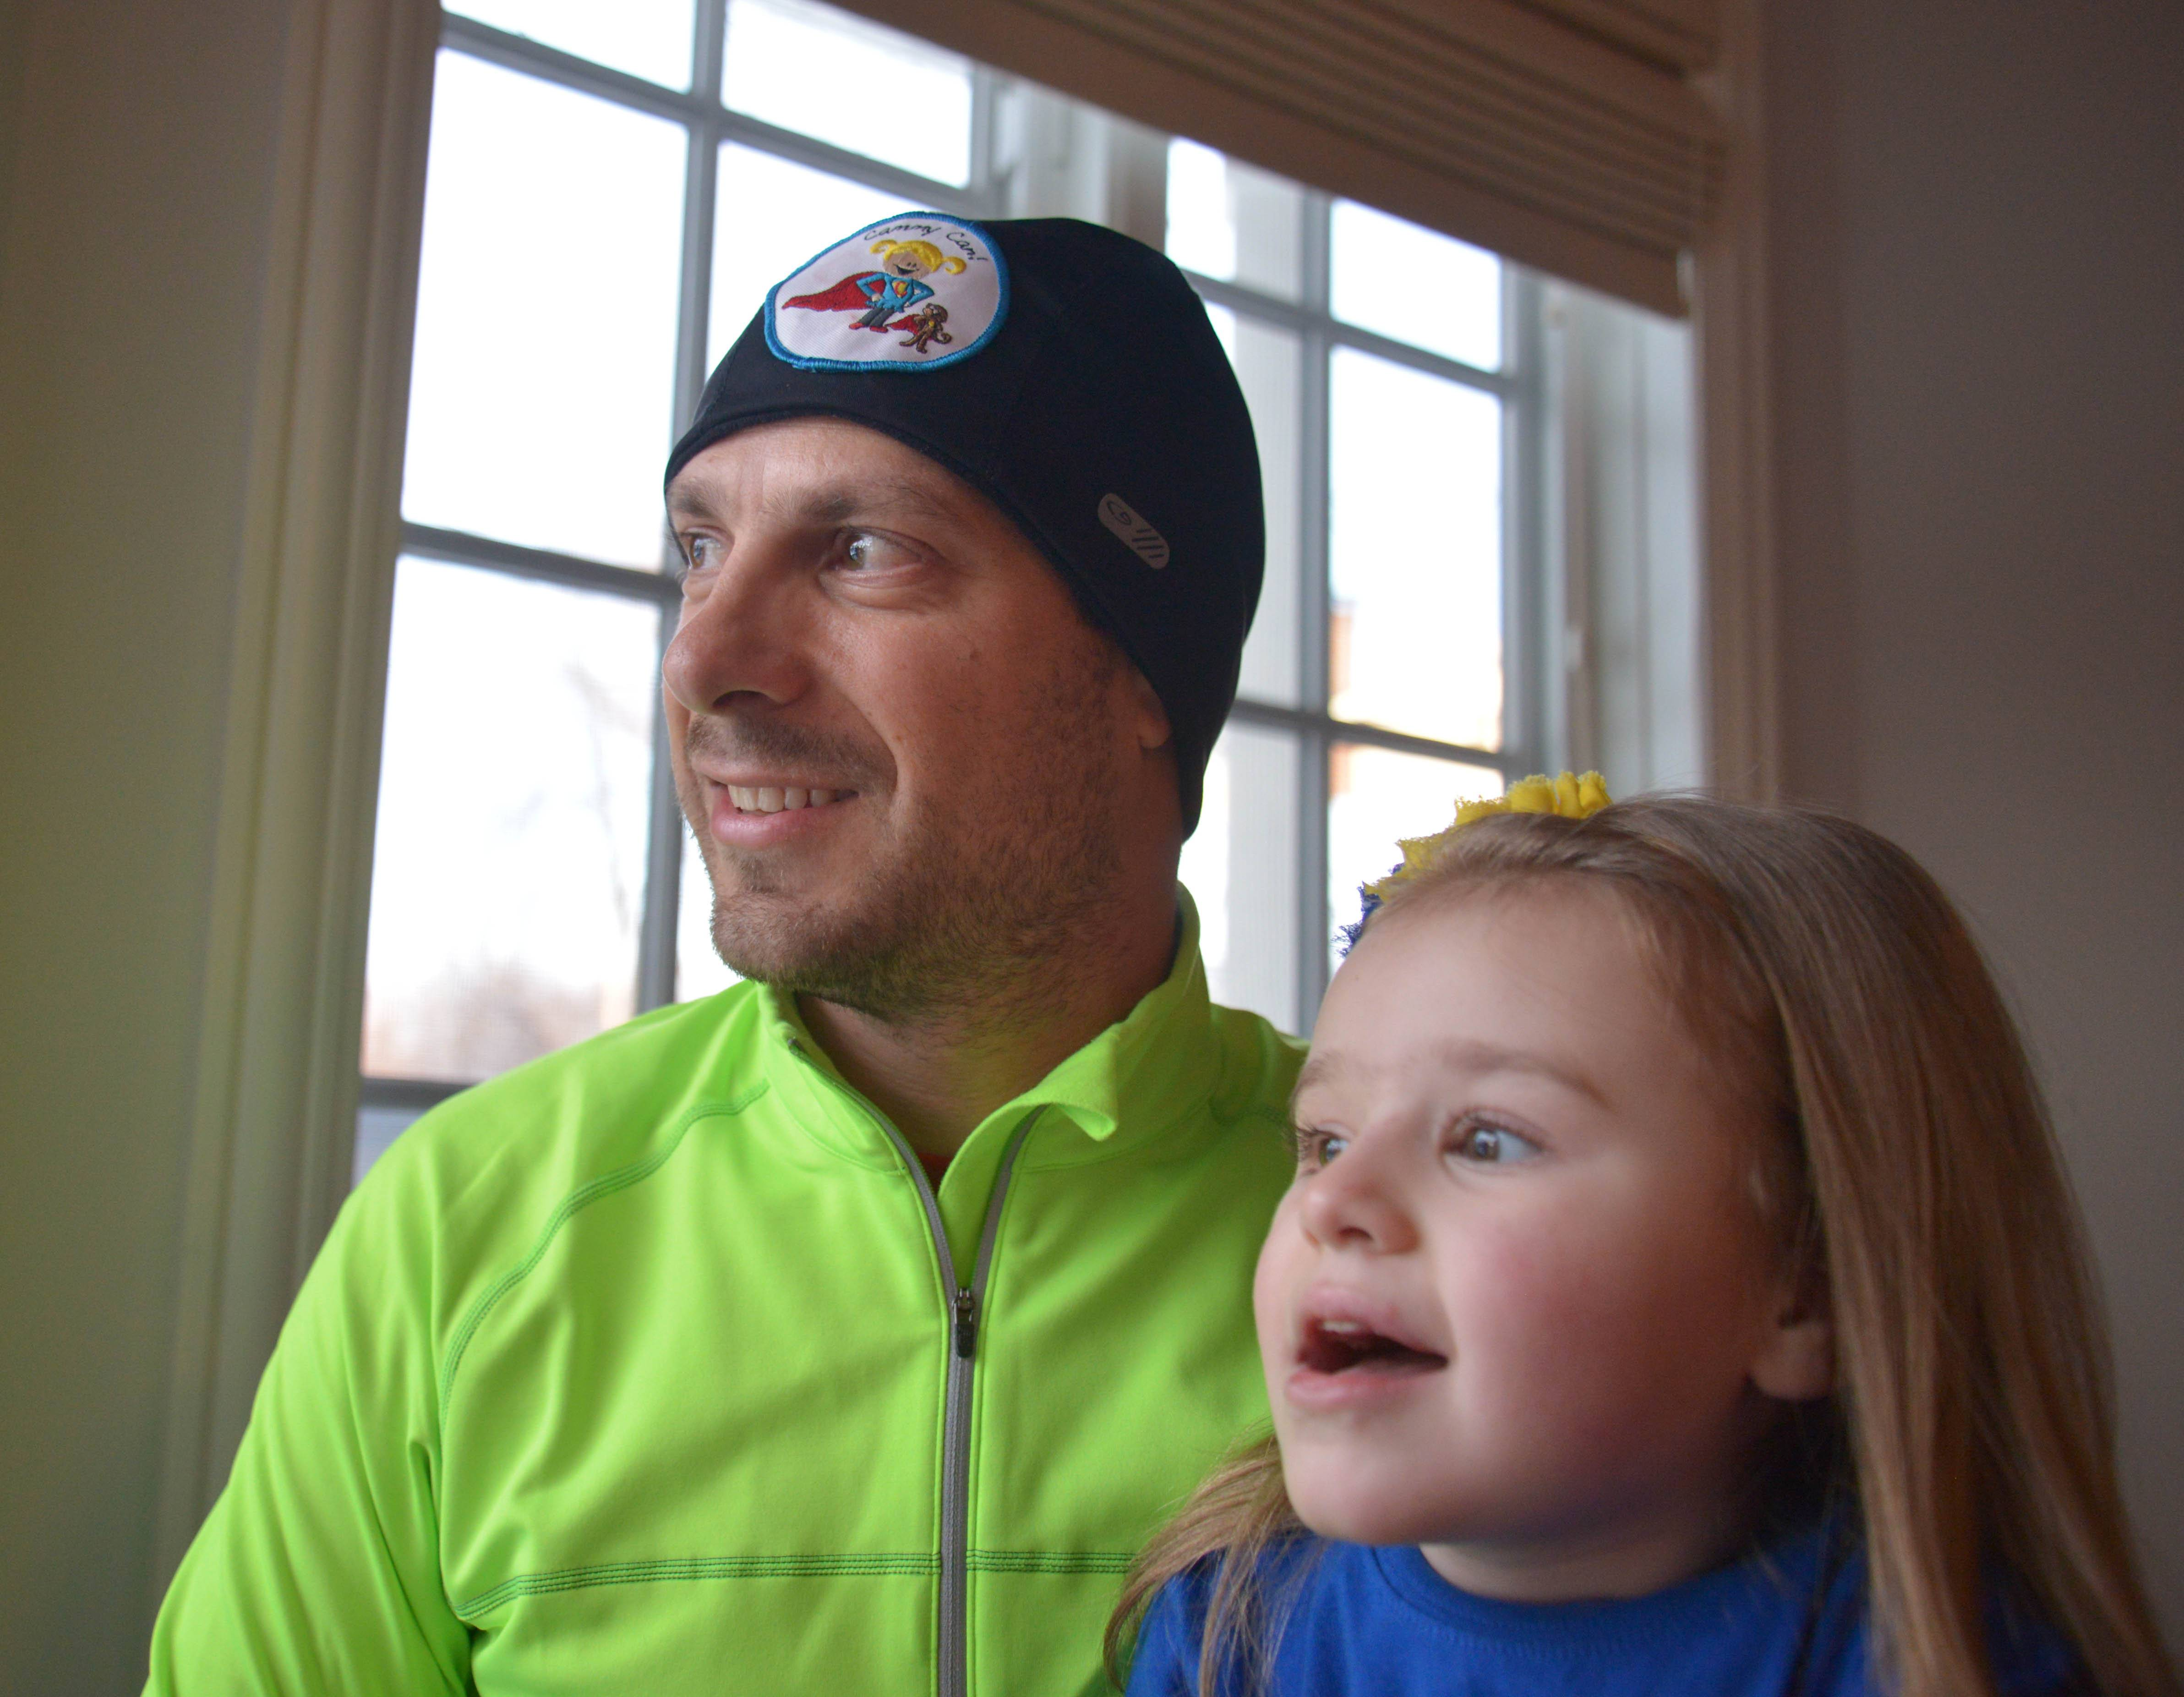 Inspired by his daughter, Cammy, whose neurological disorder prevents her from walking, Bill Babiarz is planning a 150-mile, five-day Run Across Illinois to raise awareness and funds to fight Rett syndrome.